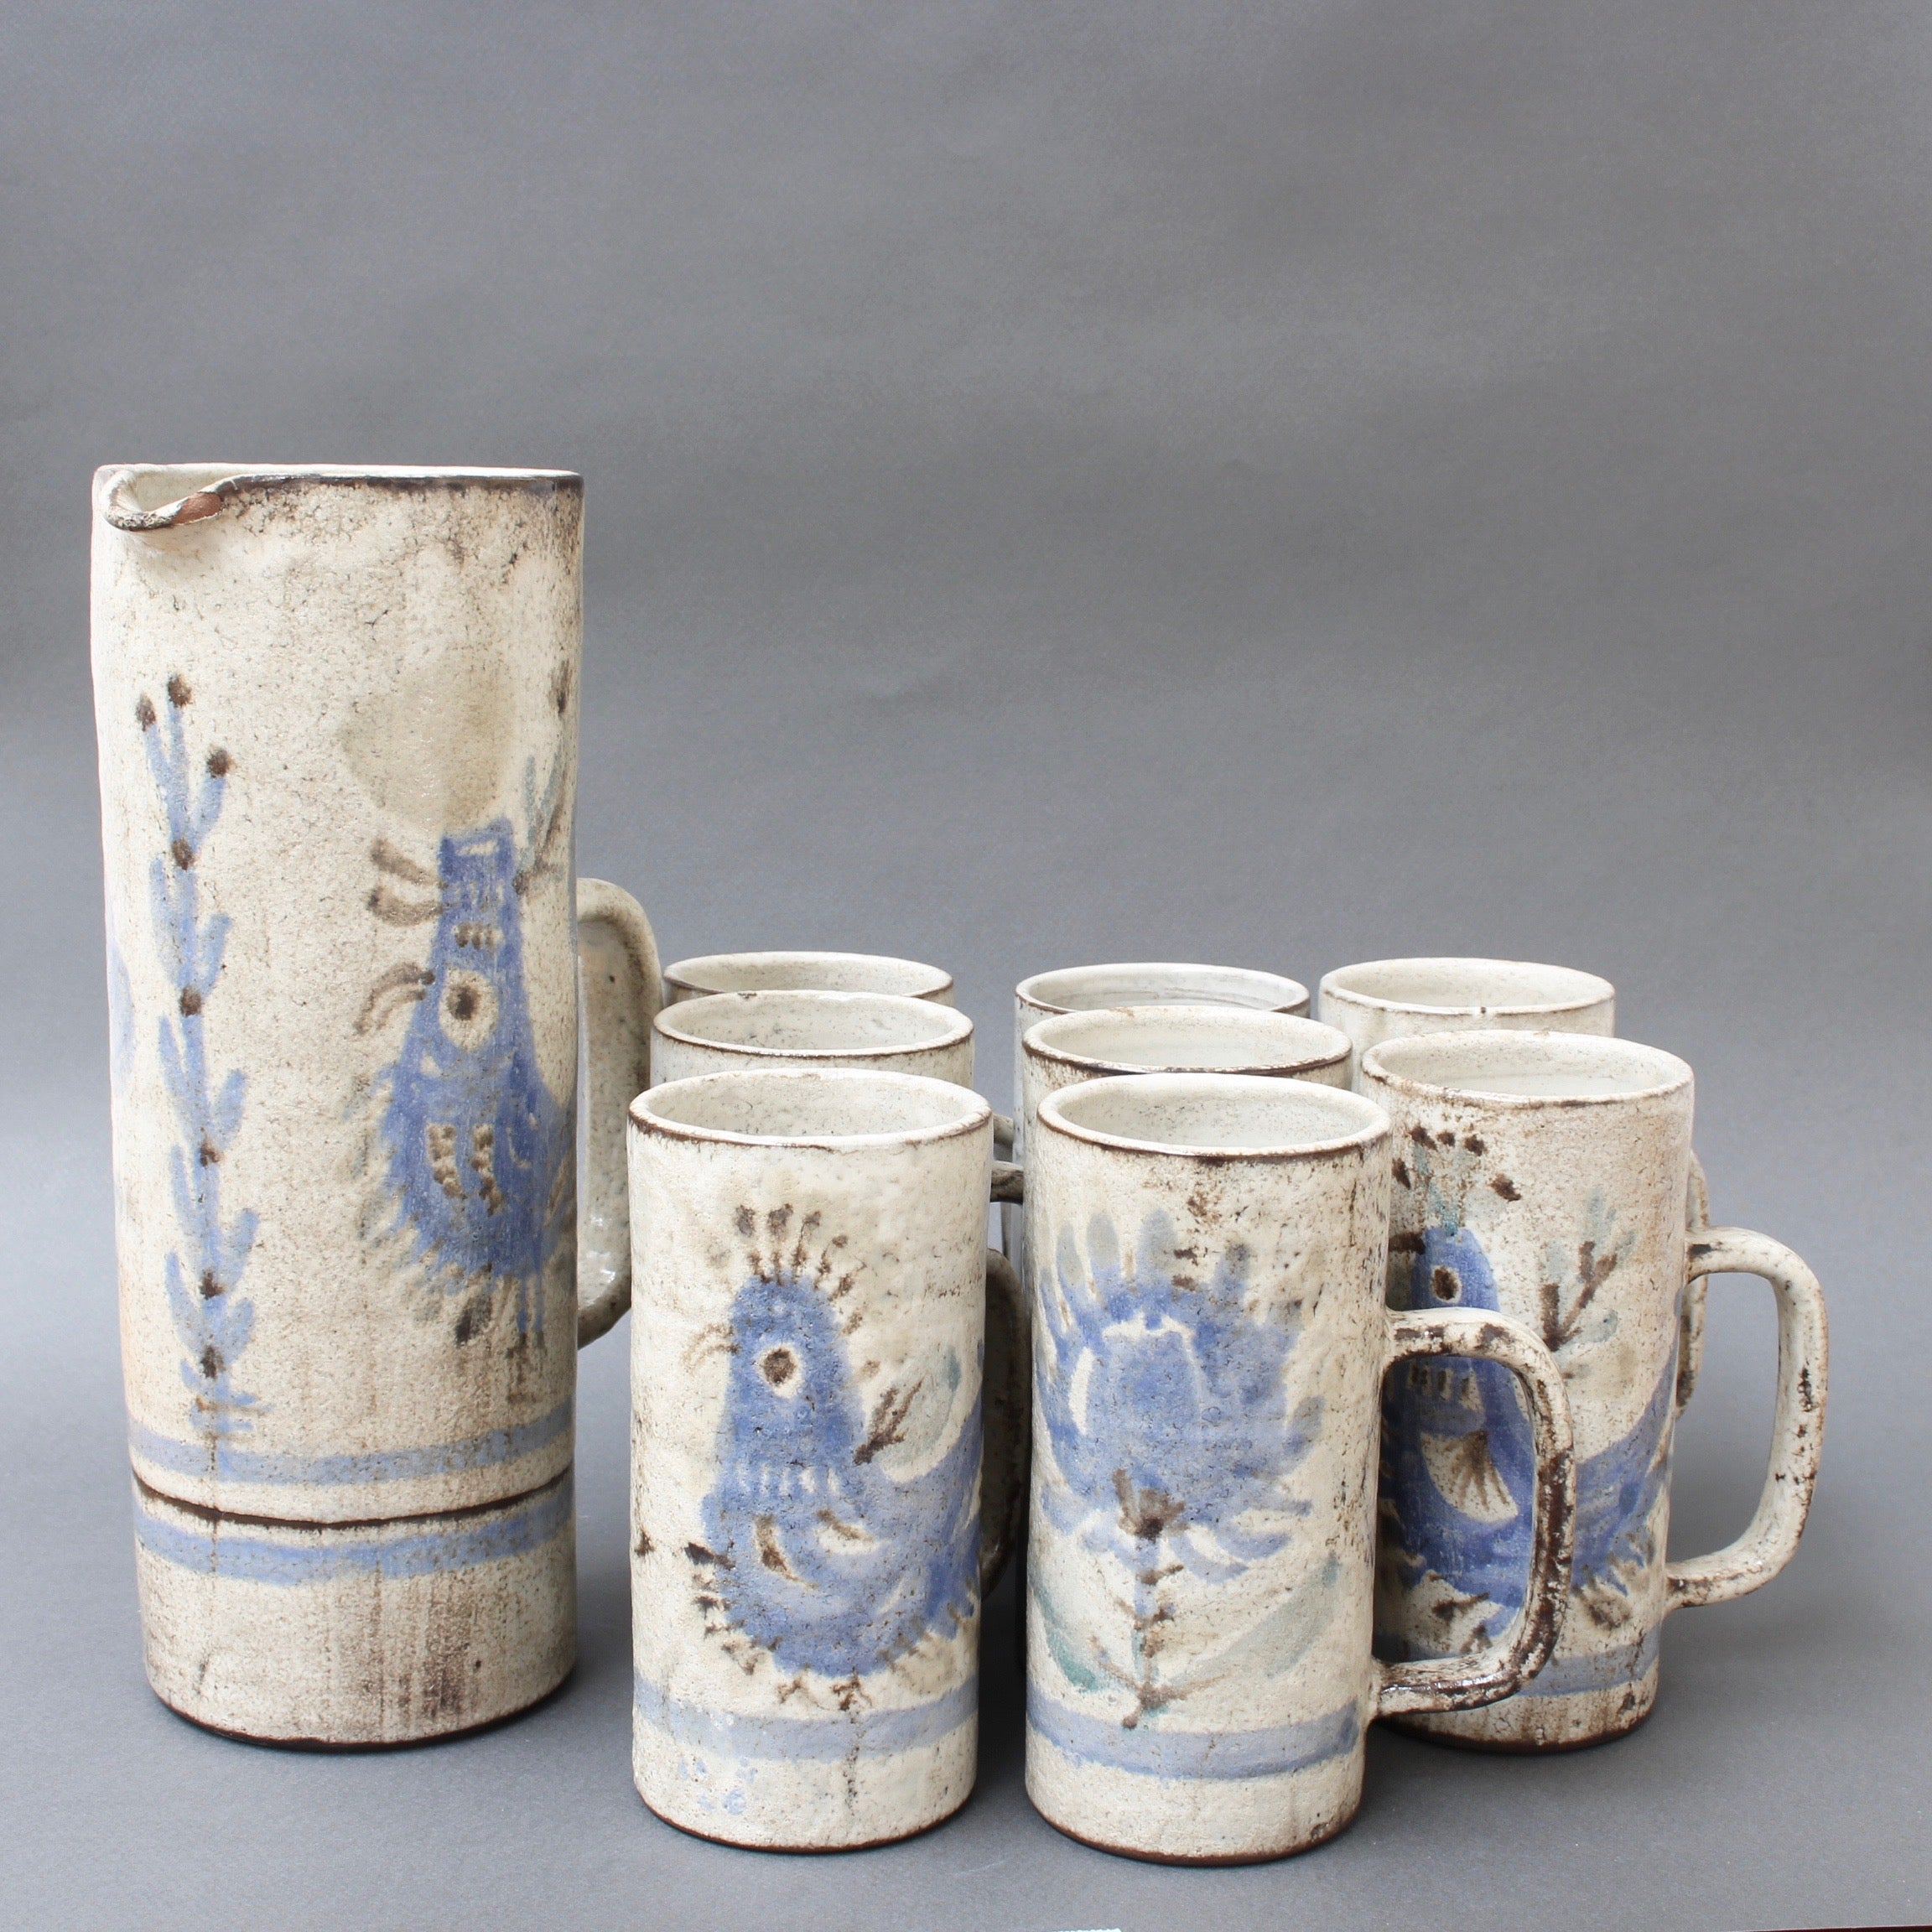 Ceramic Lemonade Service Set by Gustave Reynaud, Le Mûrier (circa 1950s)